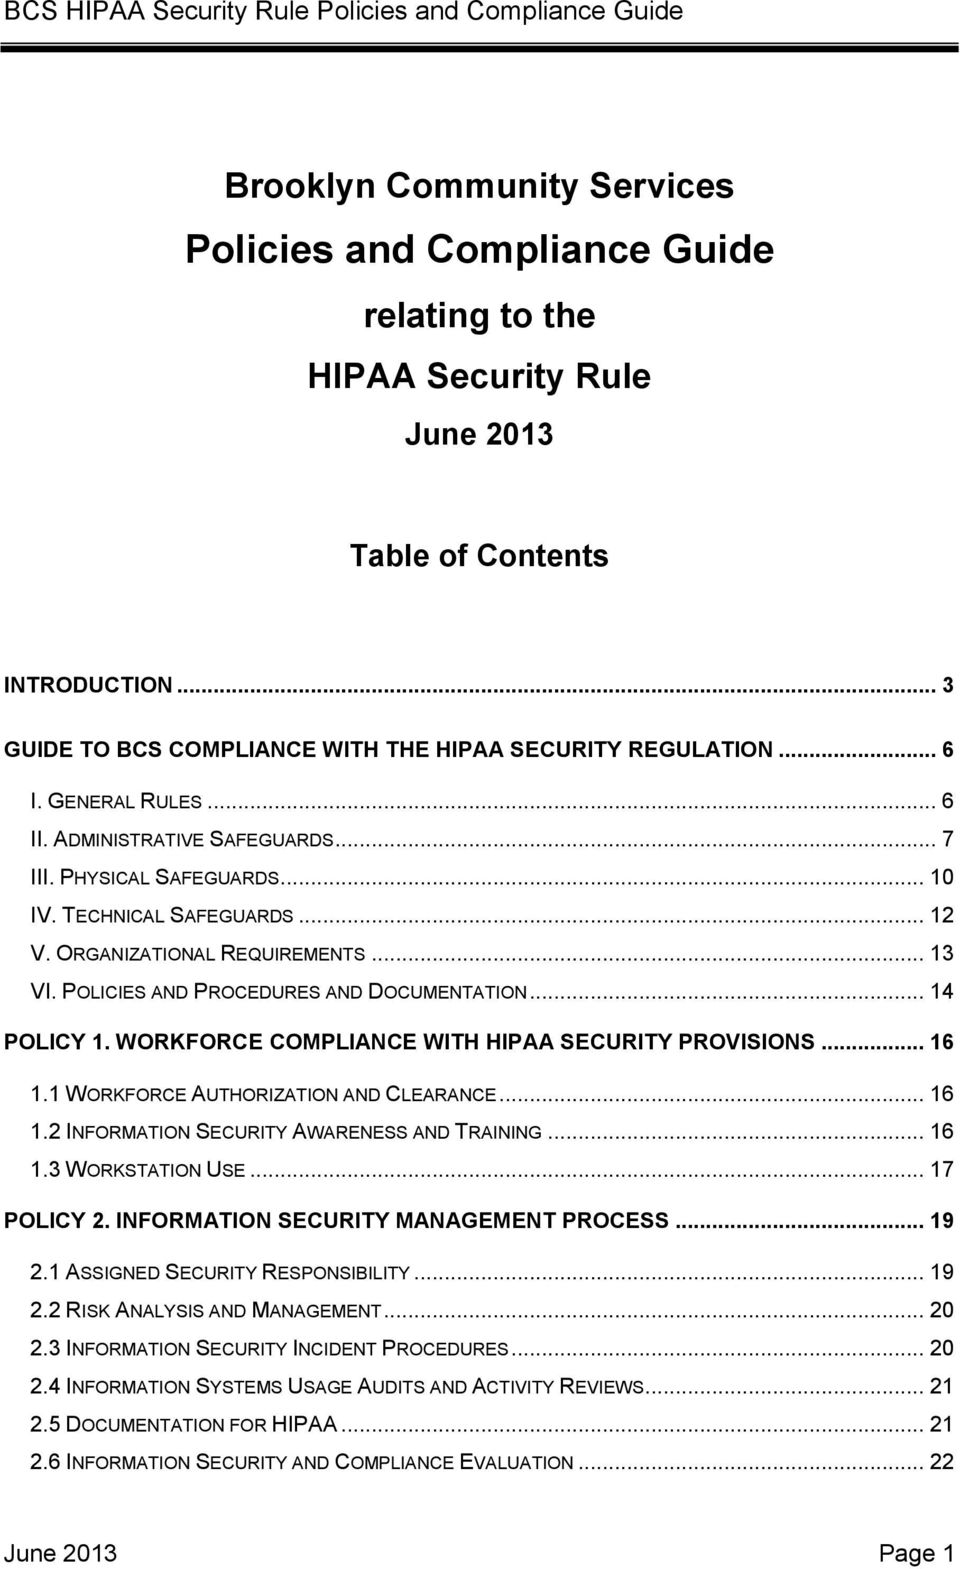 POLICIES AND PROCEDURES AND DOCUMENTATION... 14 POLICY 1. WORKFORCE COMPLIANCE WITH HIPAA SECURITY PROVISIONS... 16 1.1 WORKFORCE AUTHORIZATION AND CLEARANCE... 16 1.2 INFORMATION SECURITY AWARENESS AND TRAINING.